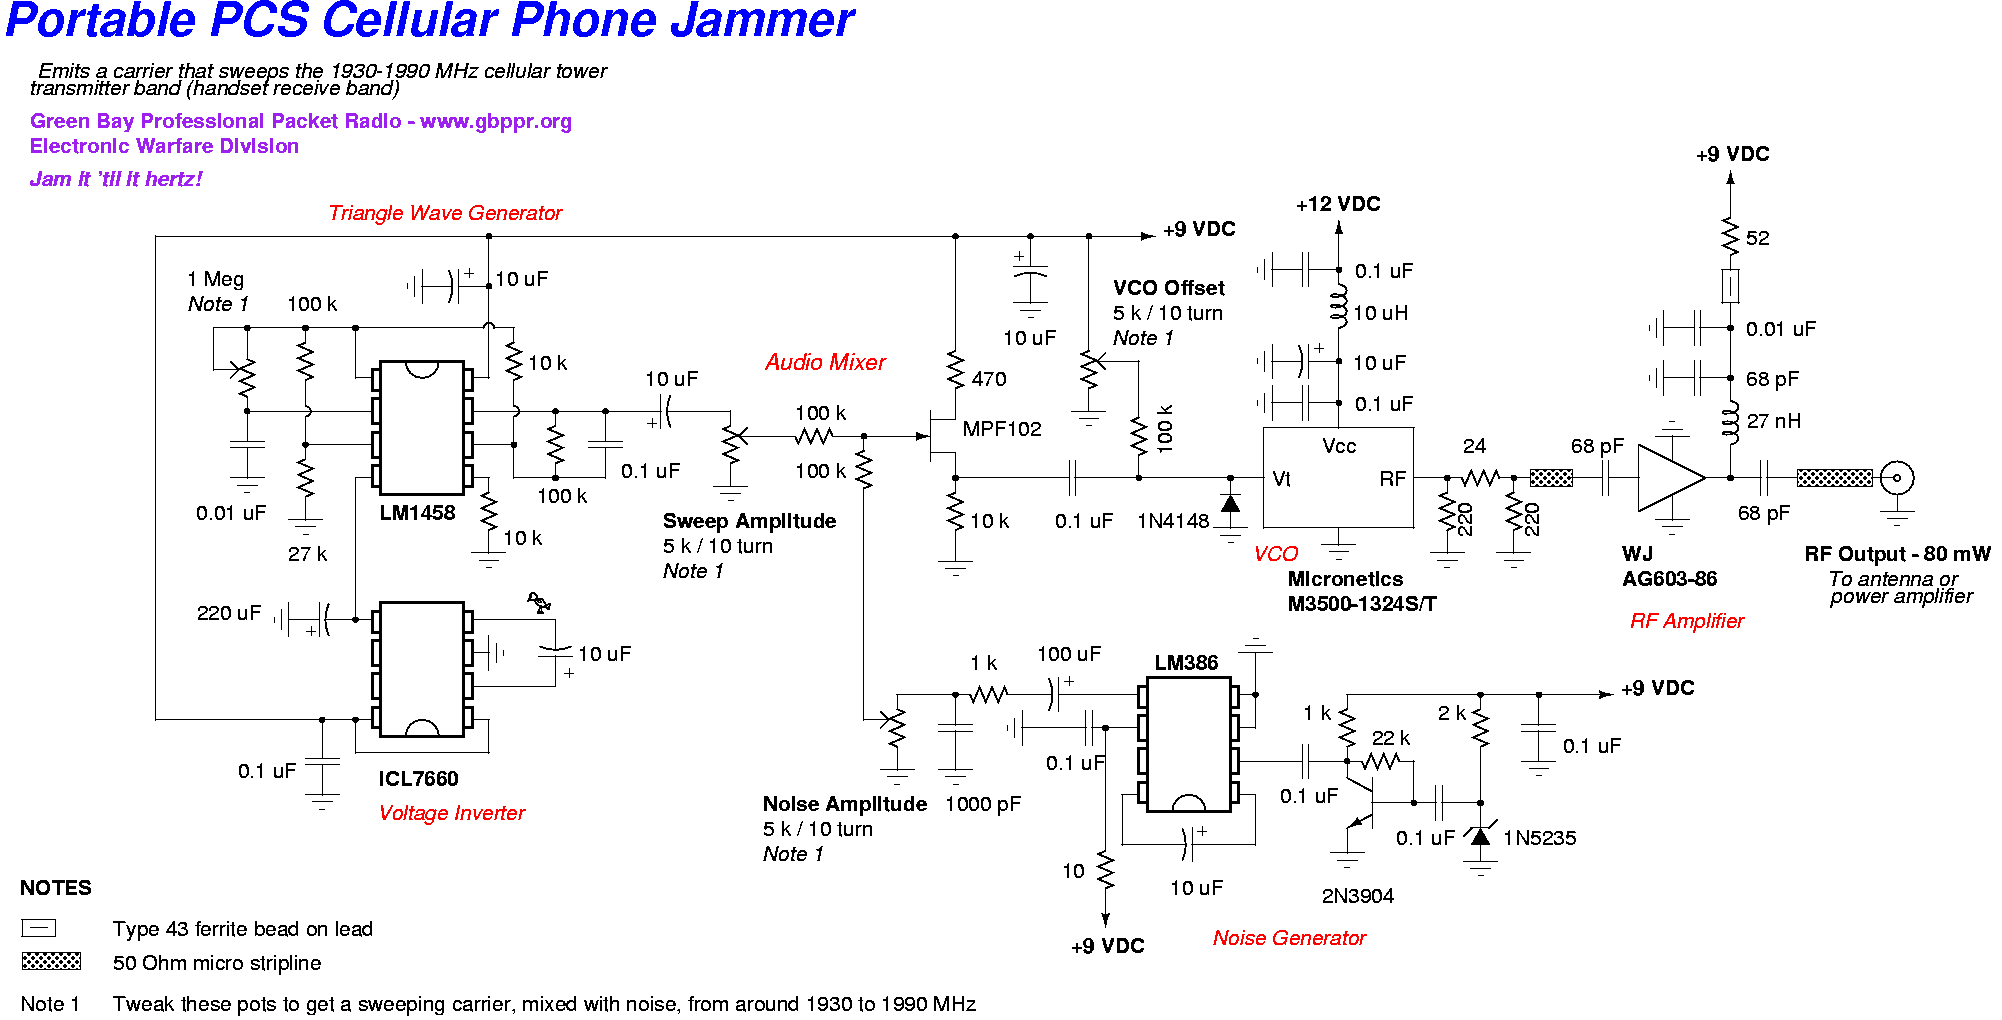 Directory Listing Of Texts Government Information Circuit Diagram Metal Detector Project Pcs Jammer New